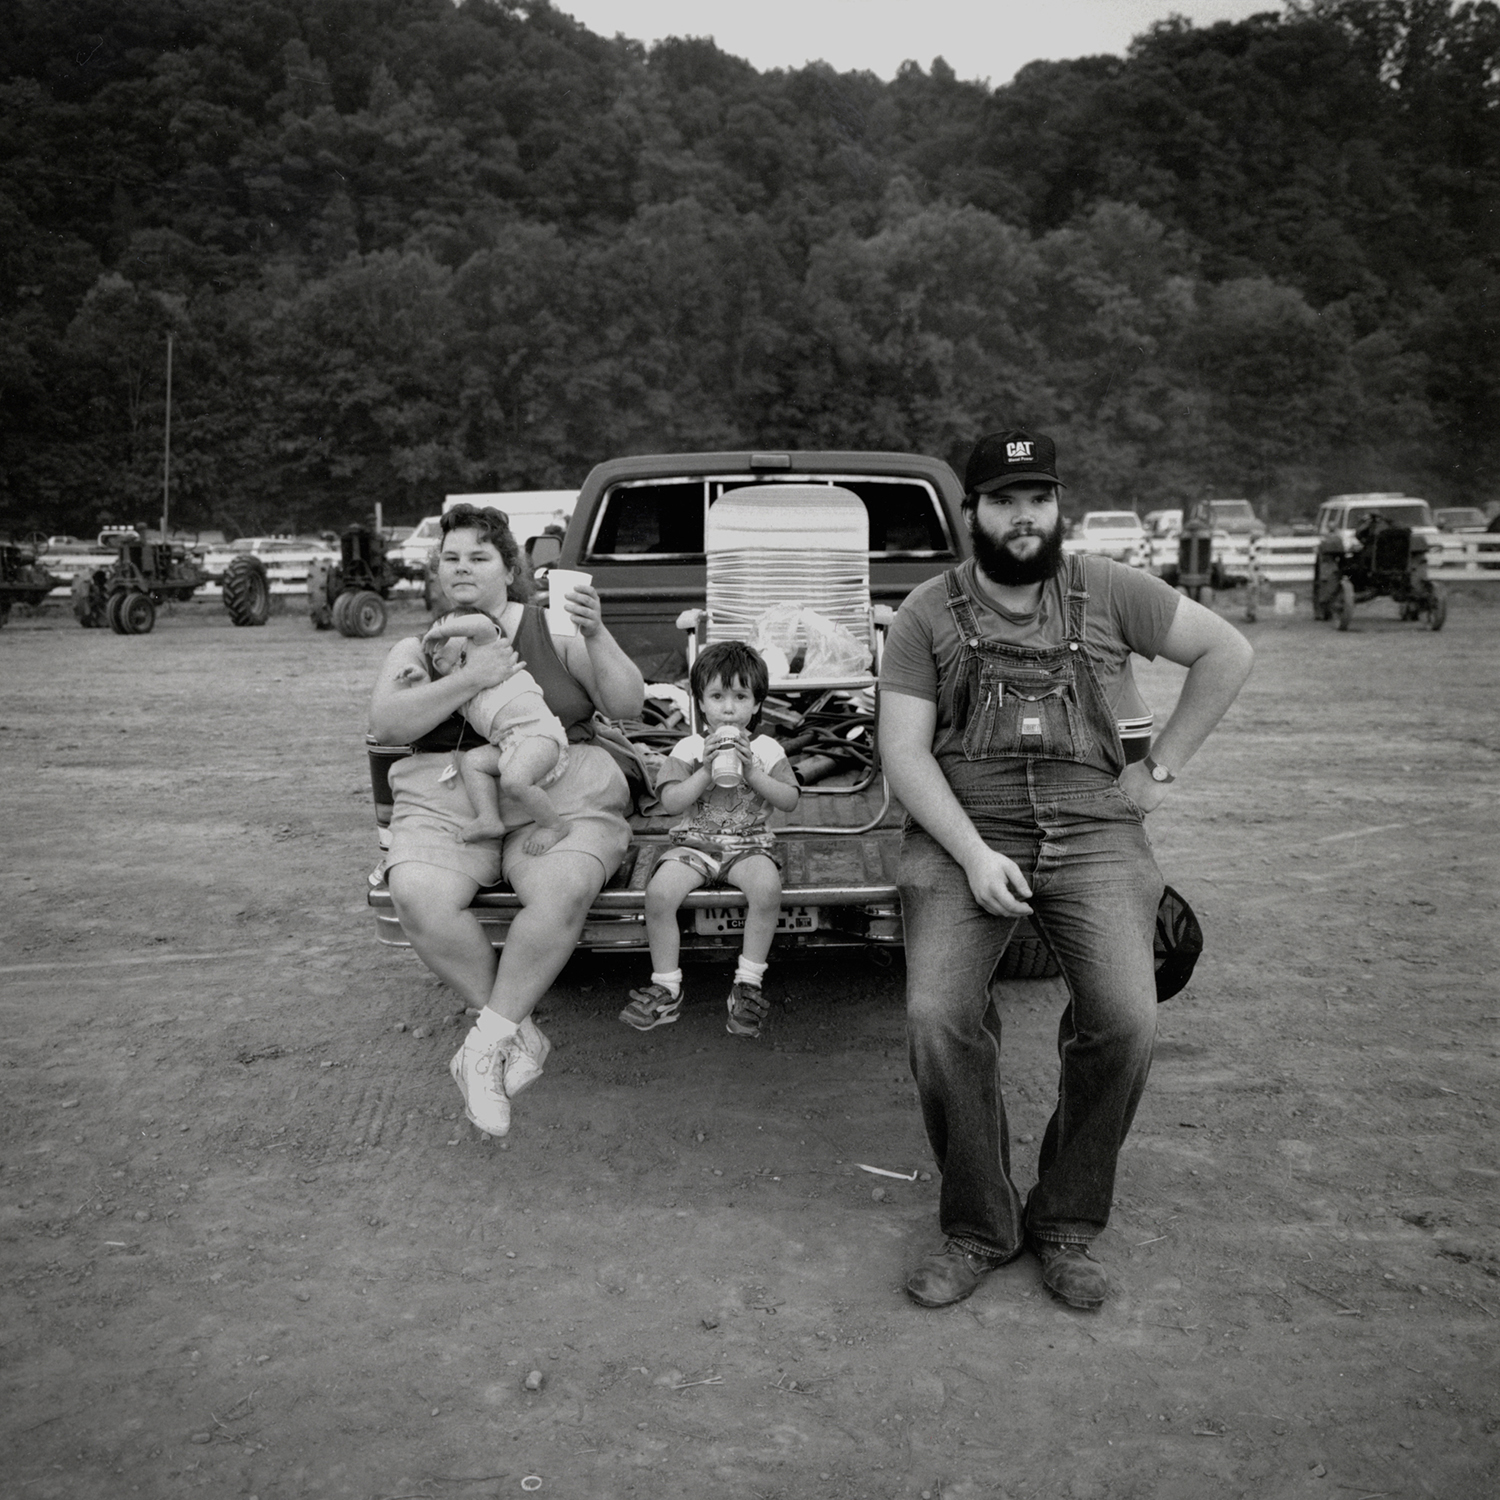 Family Waiting for the Tractor Pull, Horatio, Arkansas, archival pigment print, 16x20, 1990